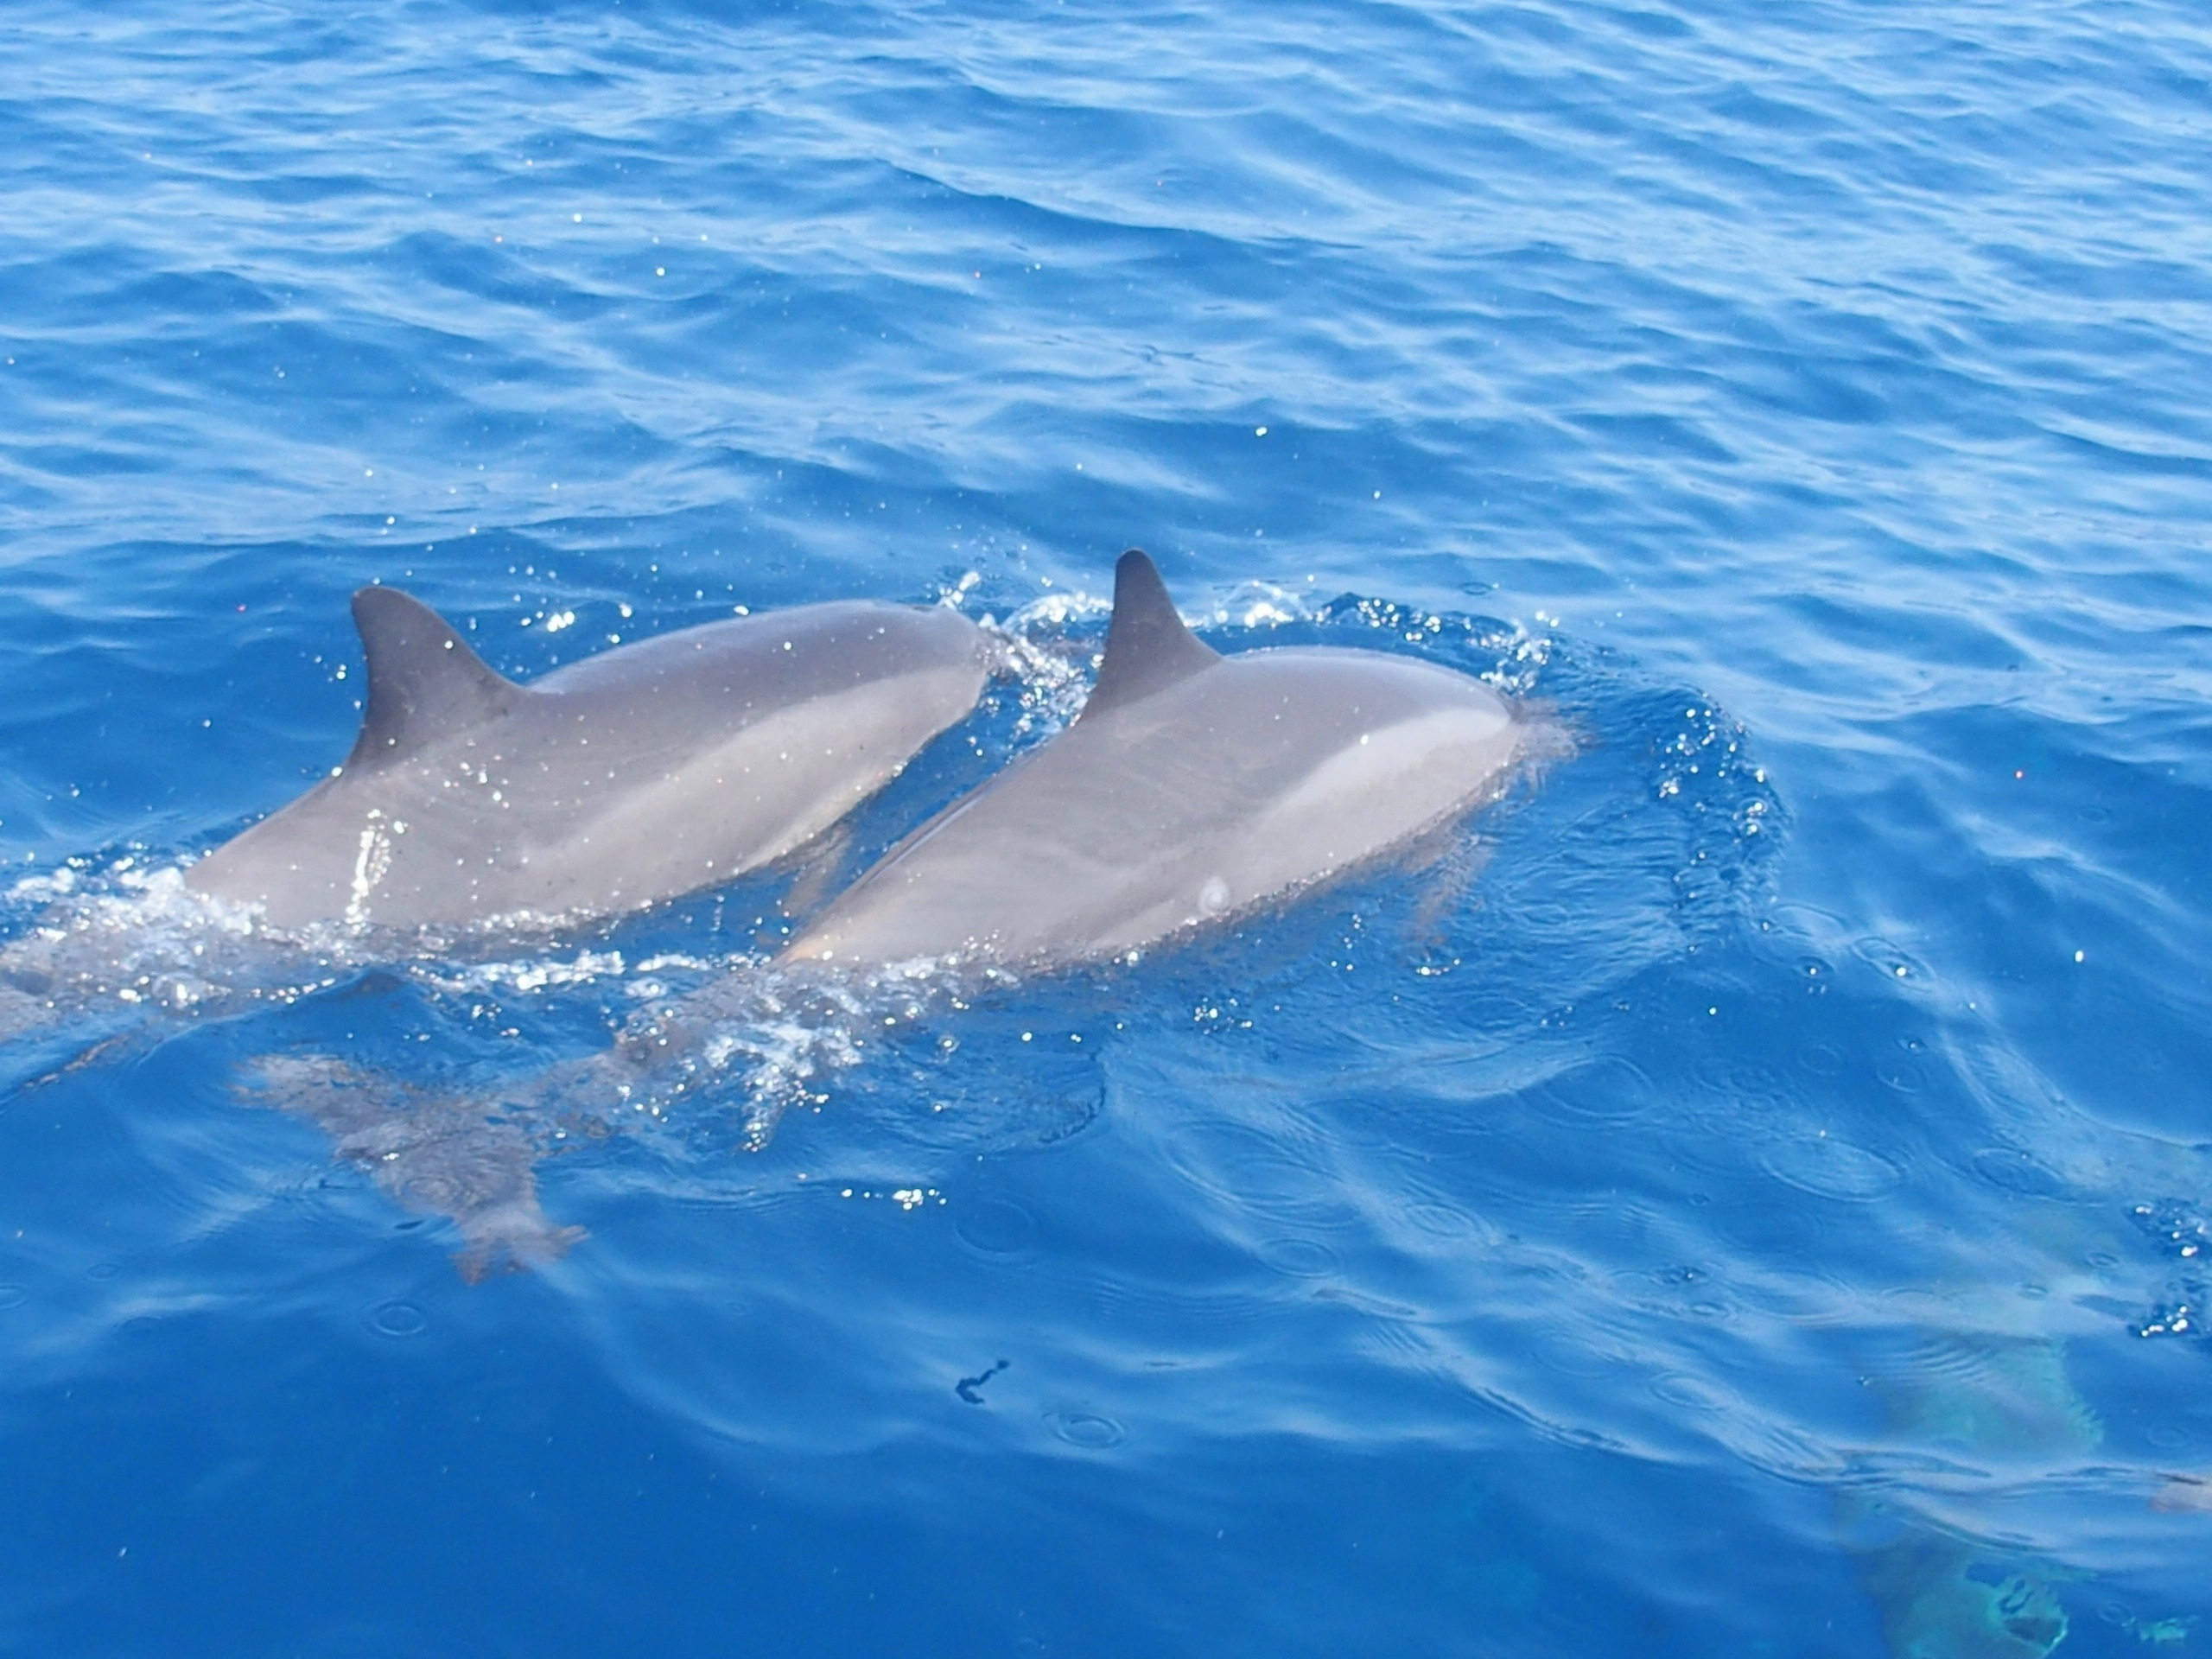 Duo de dauphins Nosy Be